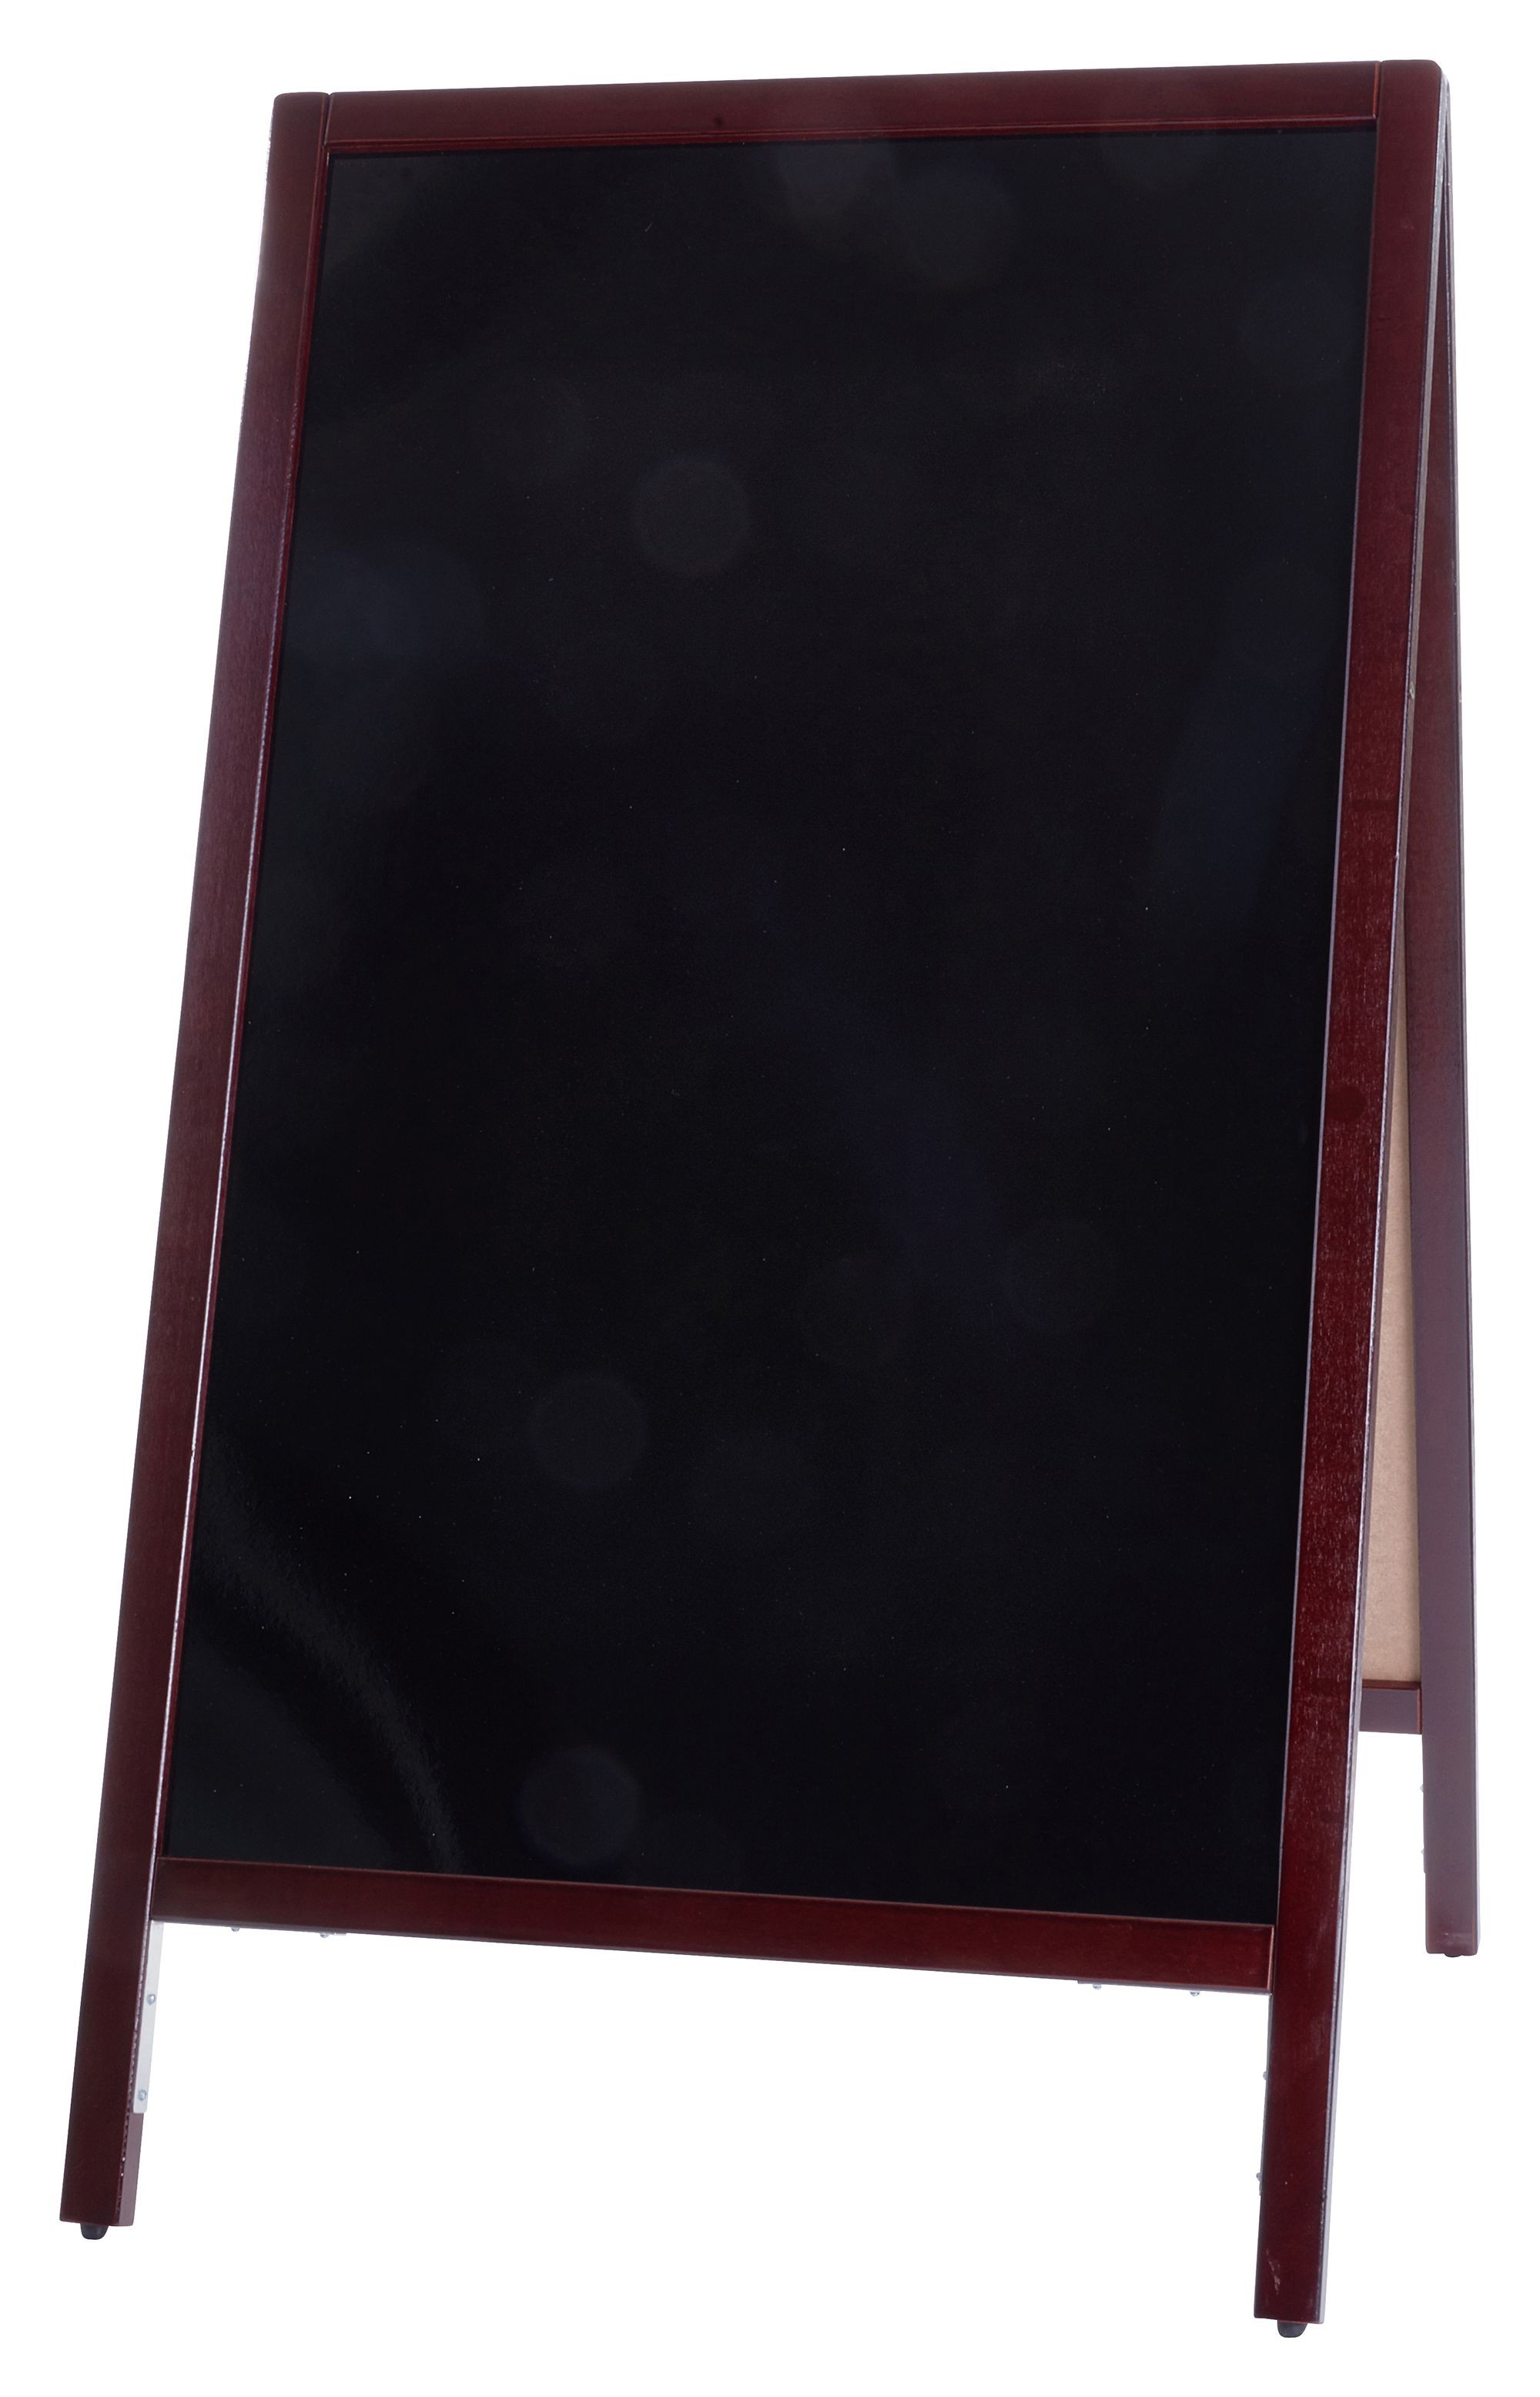 Sidewalk Marker Board - FULL SIZE - A FRAME, Mahogany (FREE Markers and Eraser With Every Purchase)